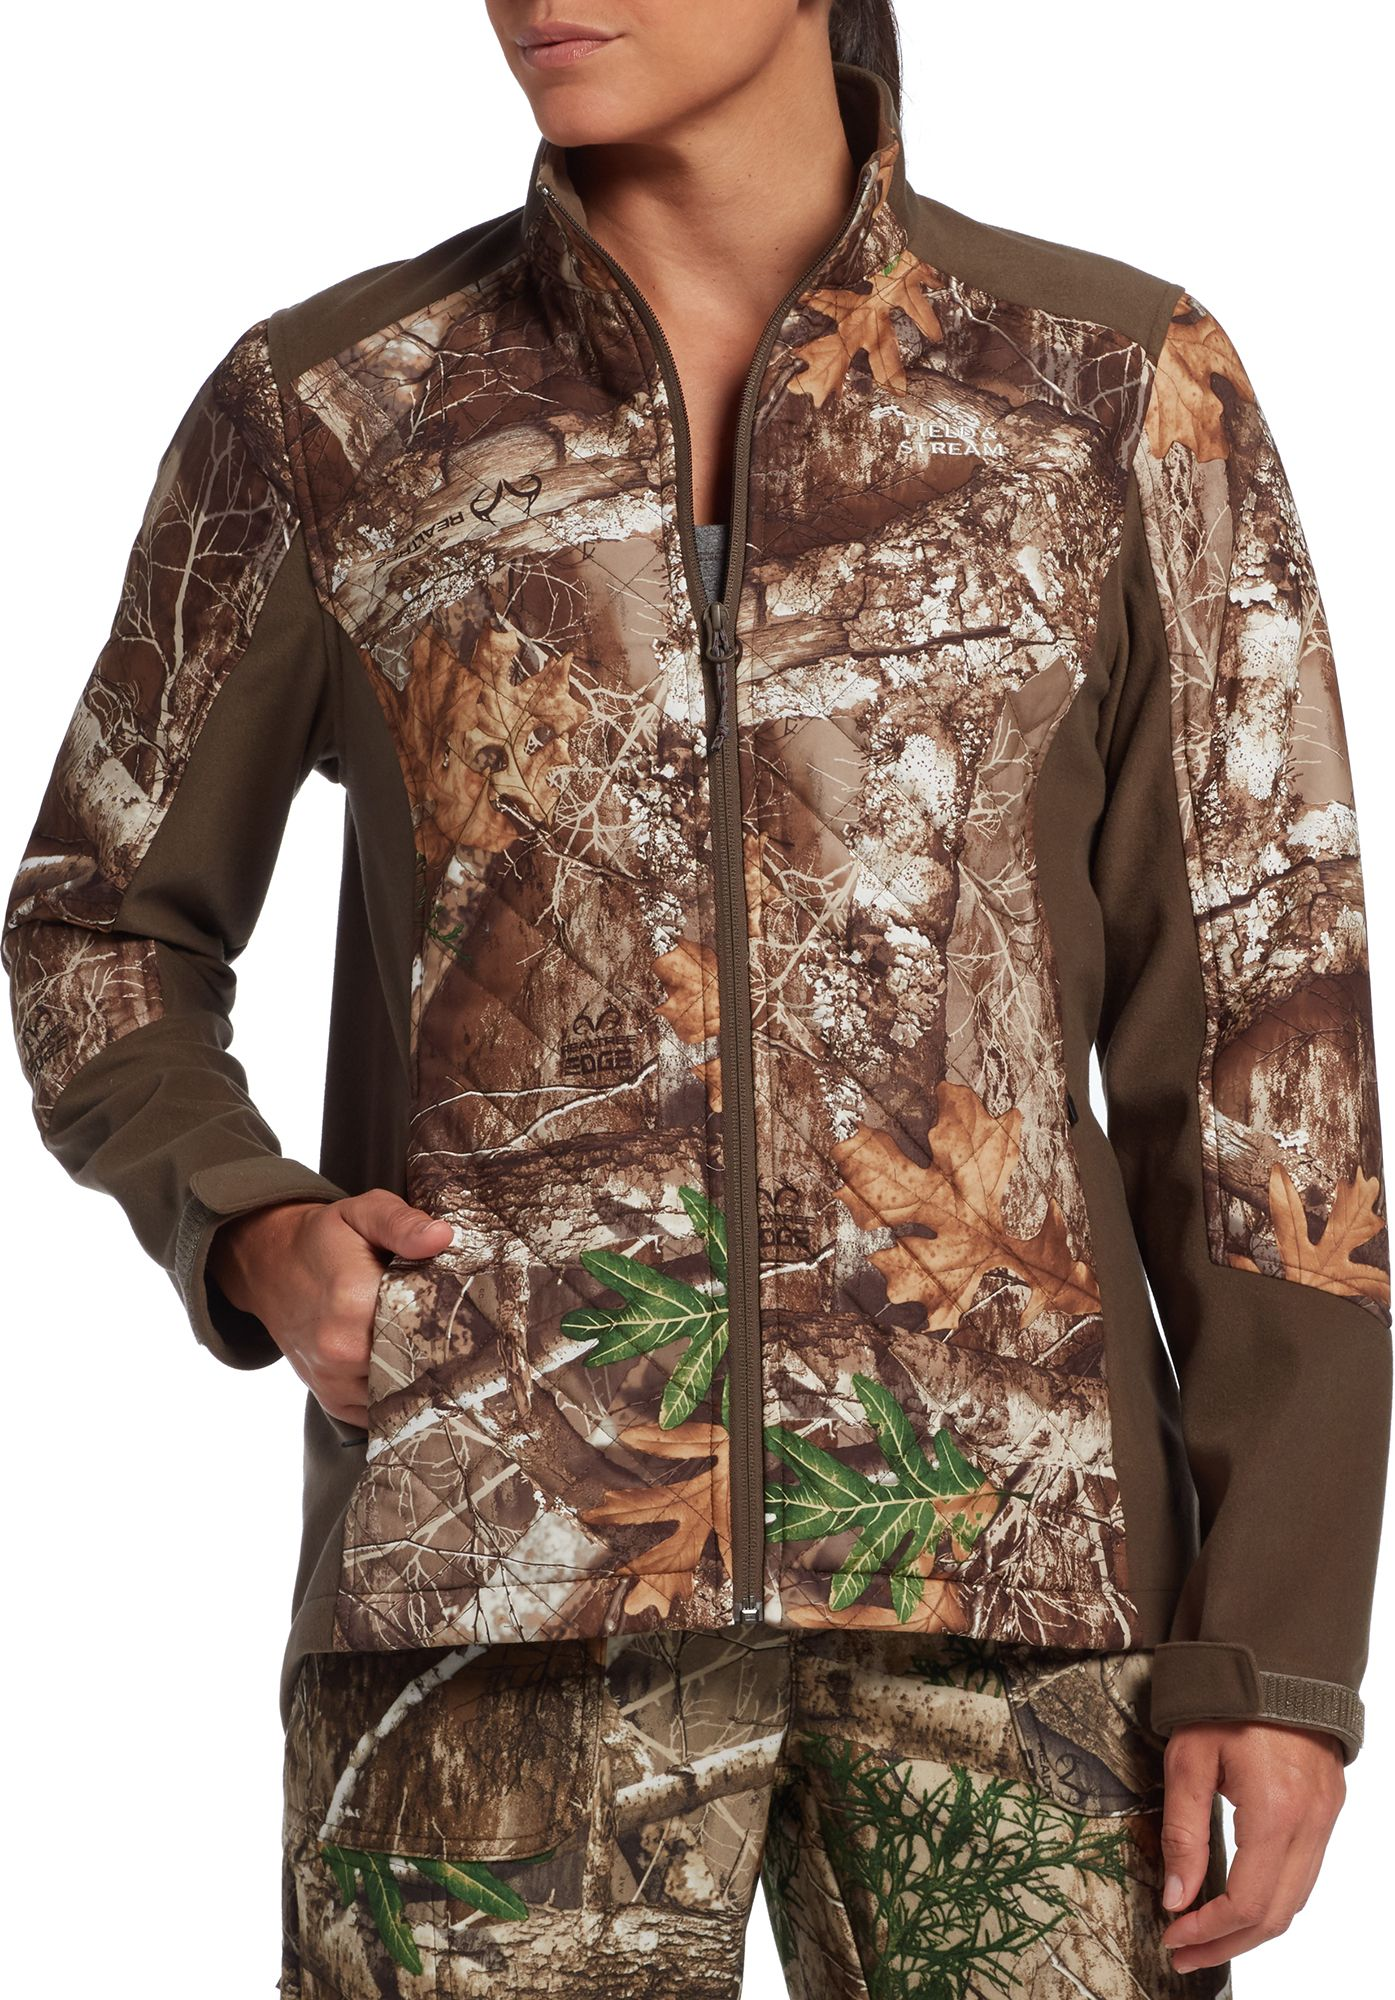 Field & Stream Women's Every Hunt Insulated Softshell Jacket, Size: Small, Multi thumbnail